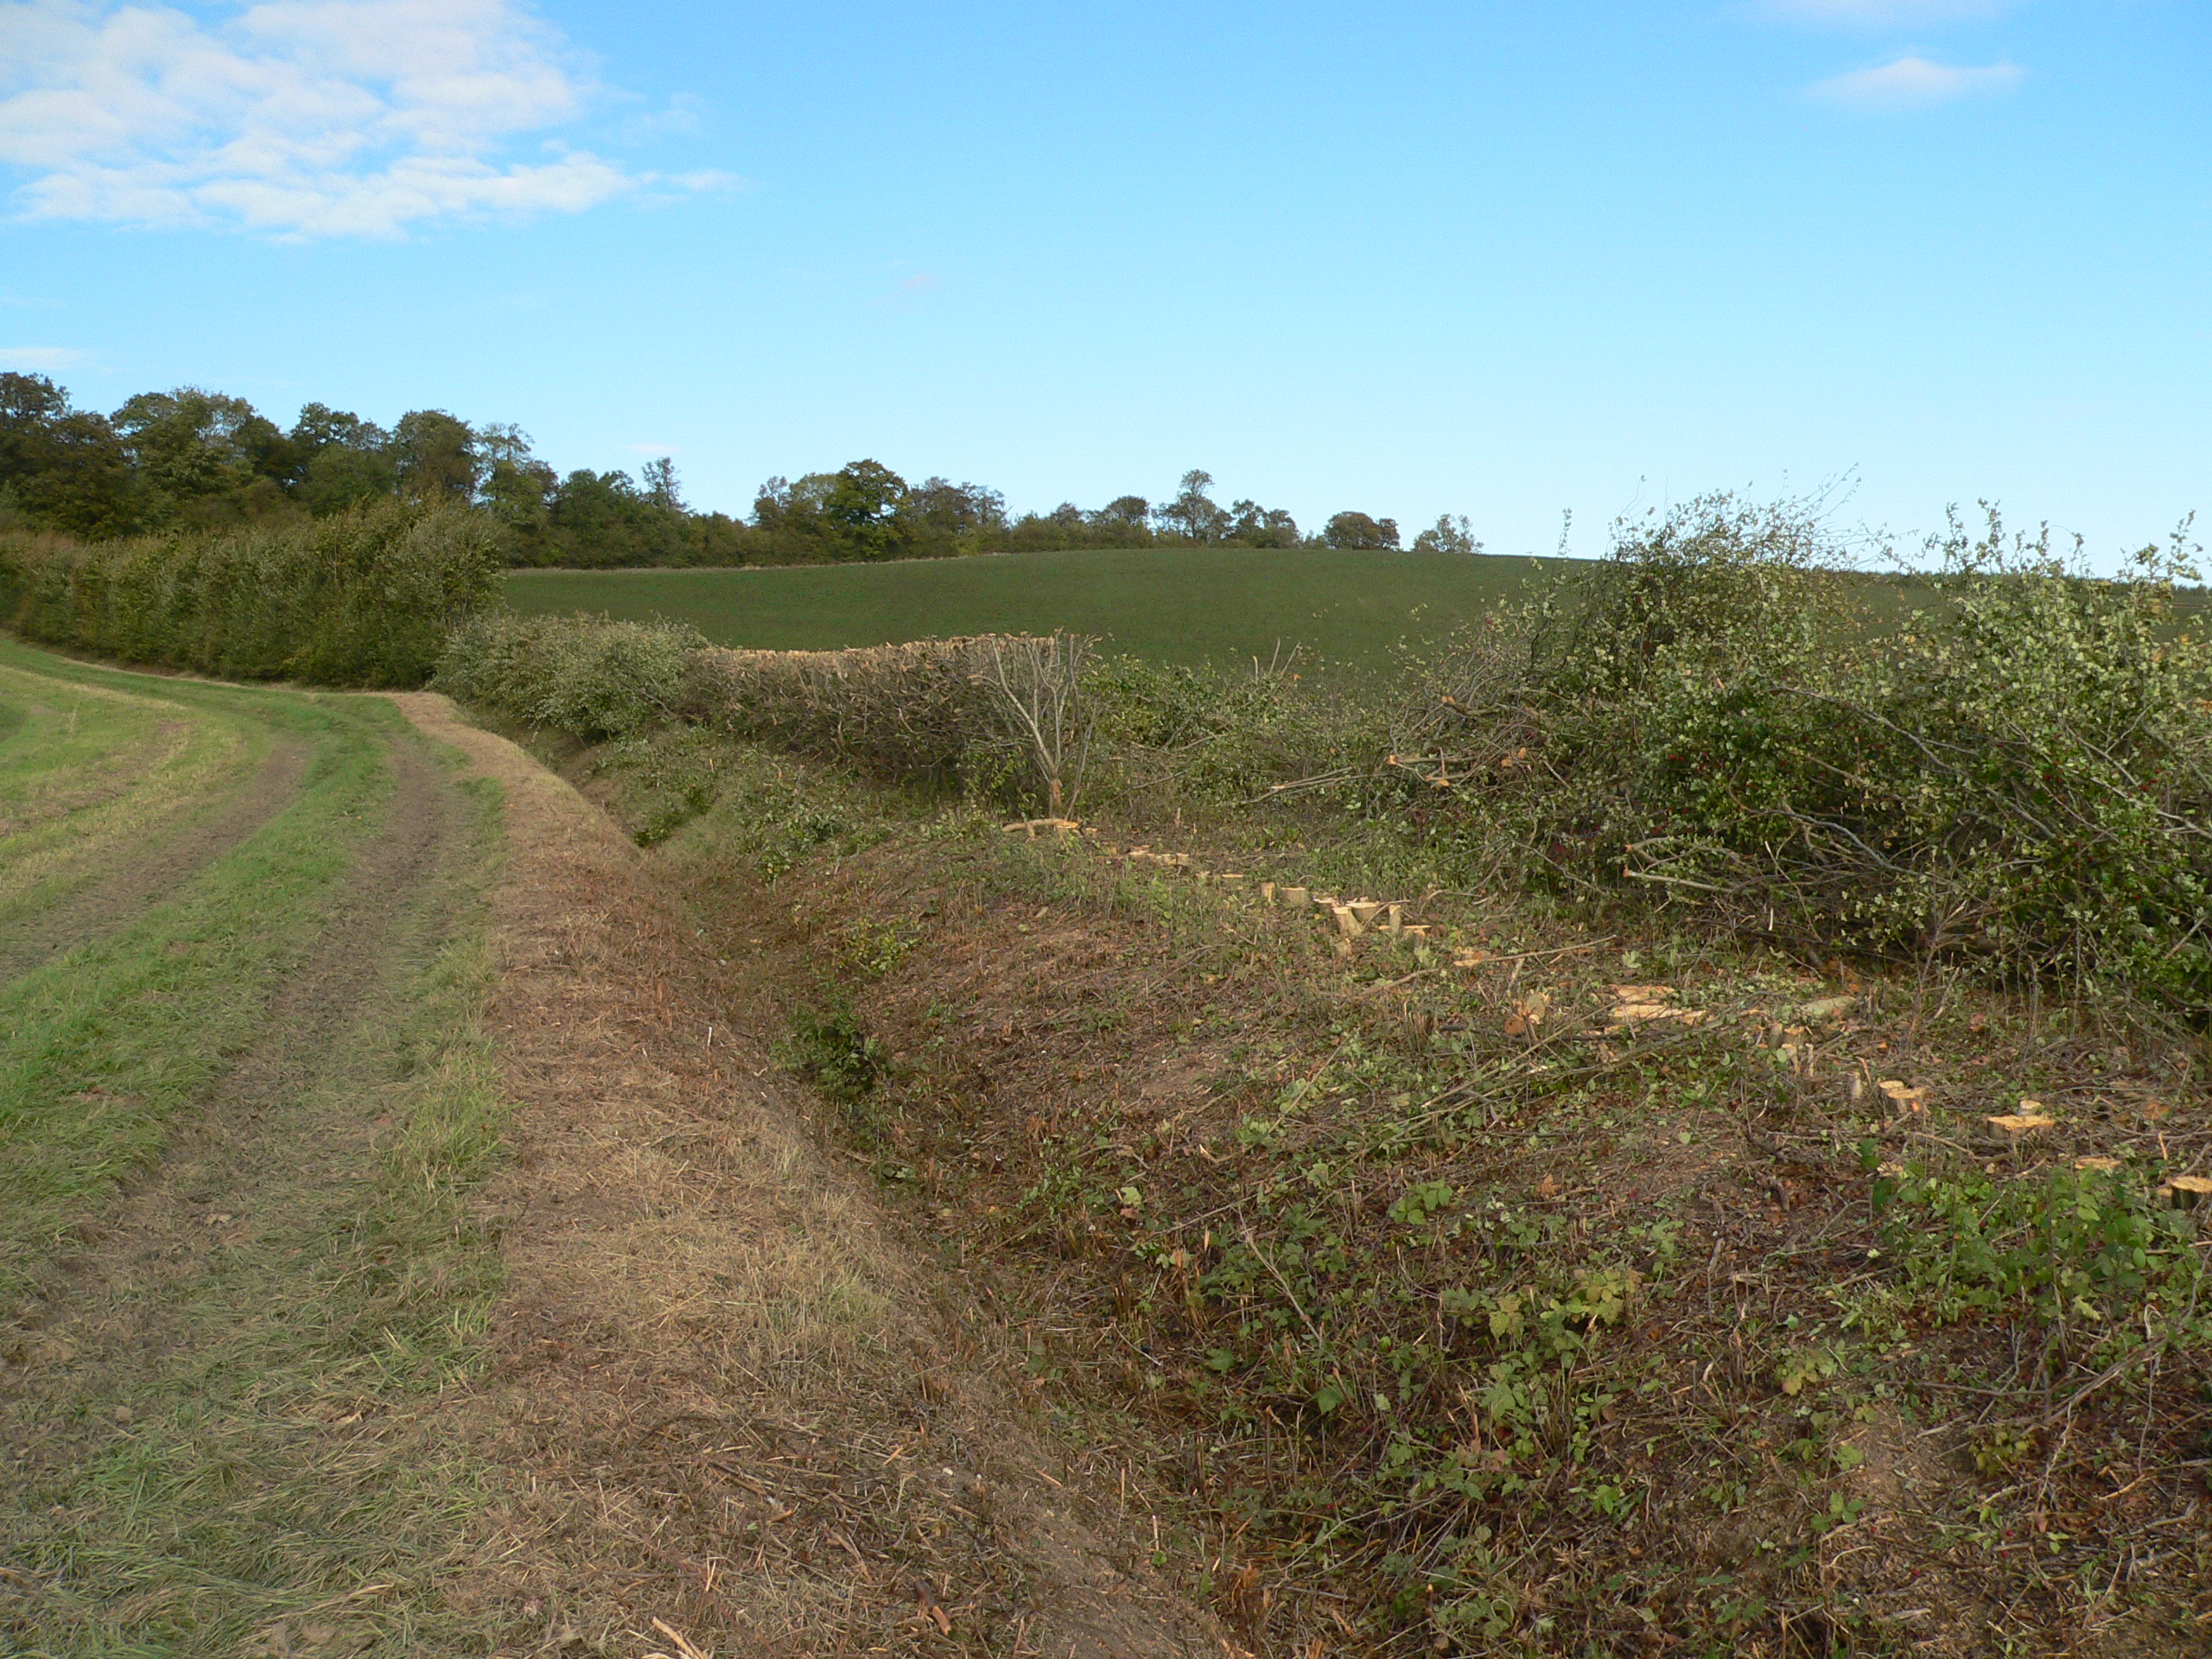 Hedgerow rejuvenation experiment, Wimpole Hall